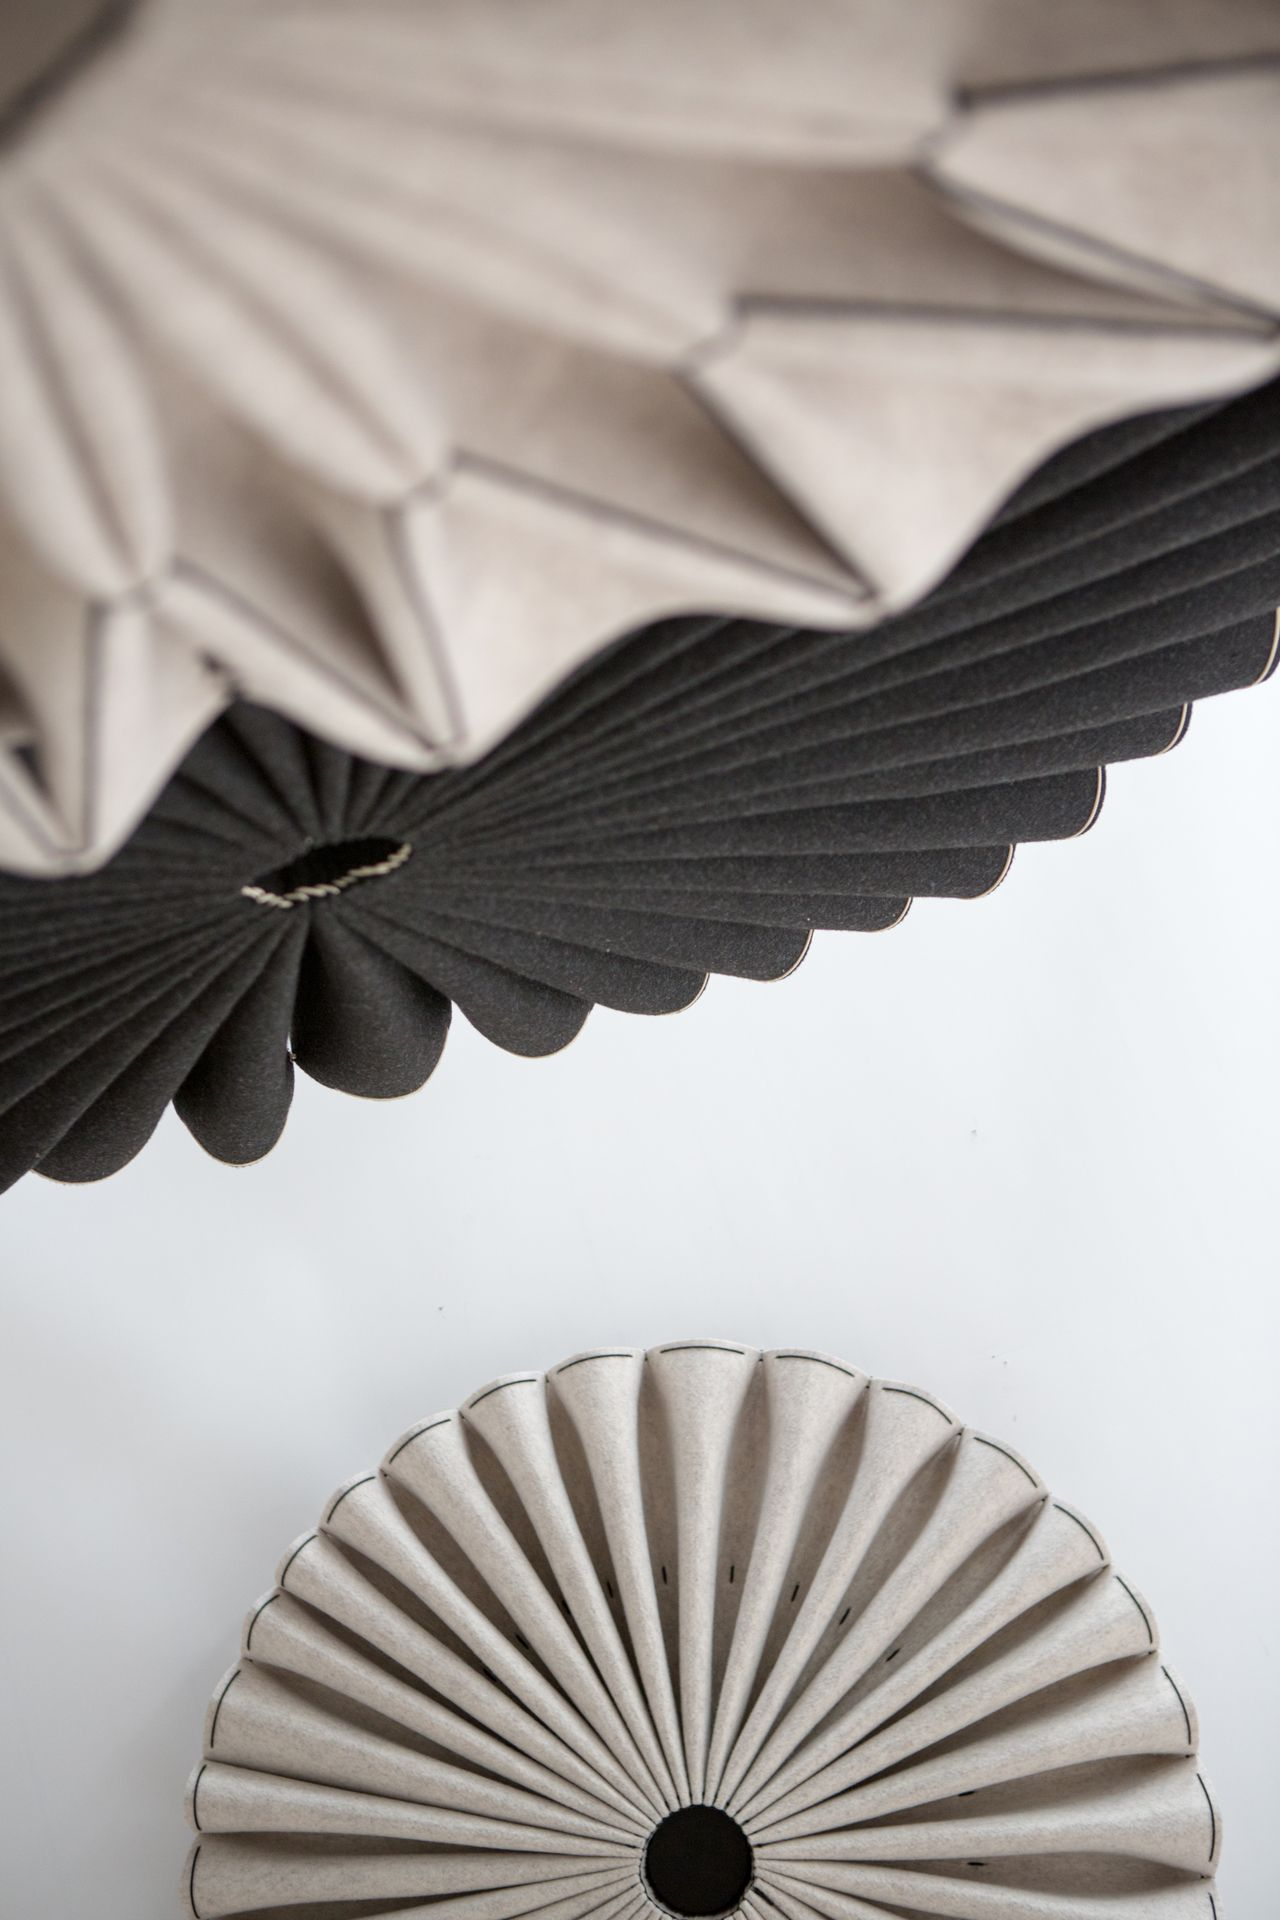 Akustik Design Buzzipleat Sculptural Sound Absorbing Forms By 13 9 Design